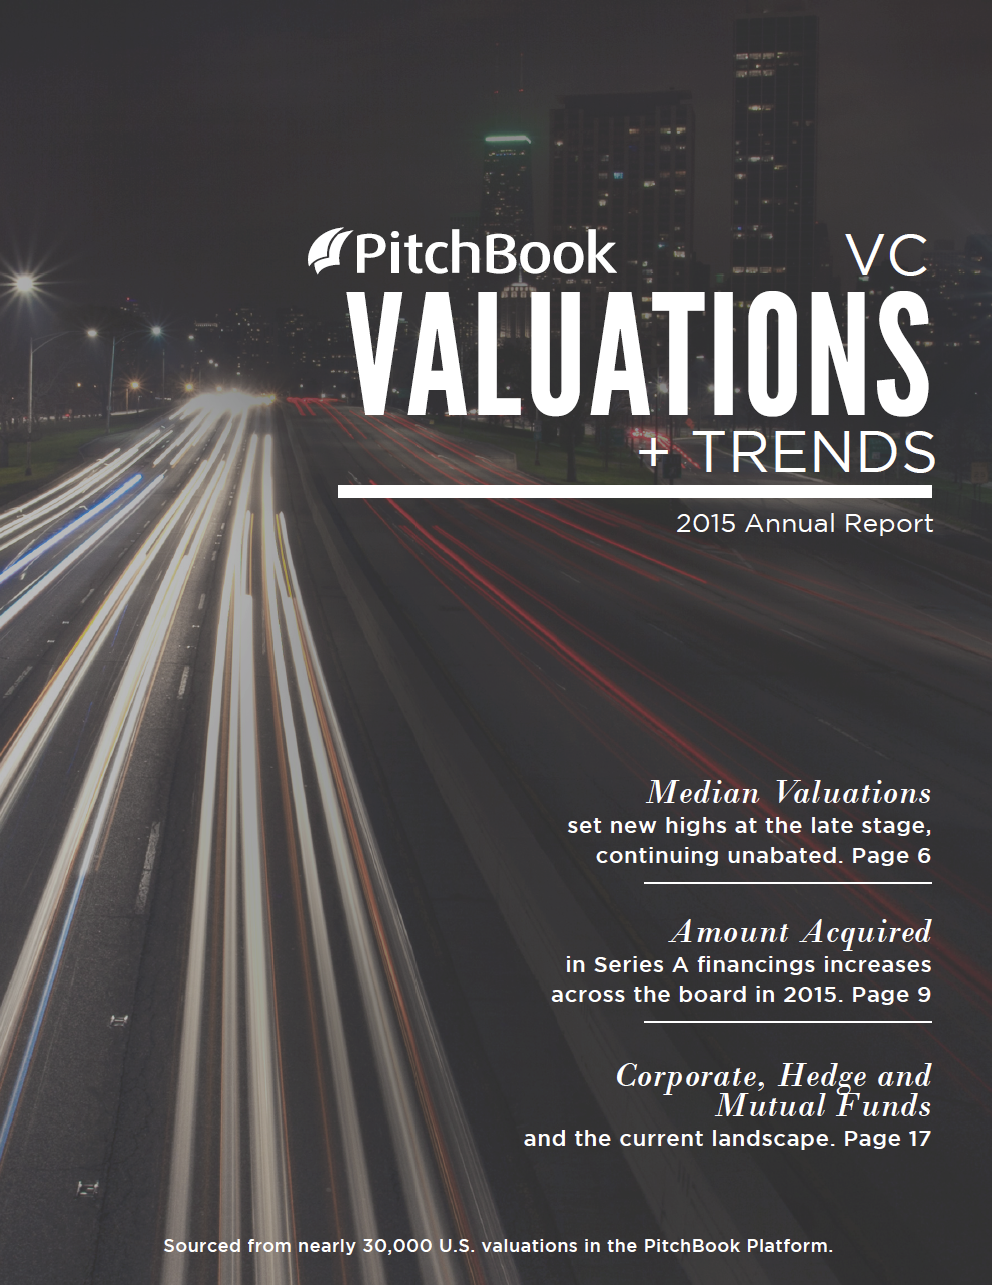 PitchbookS  Vc Valuations  Trends Report Examines Trends In